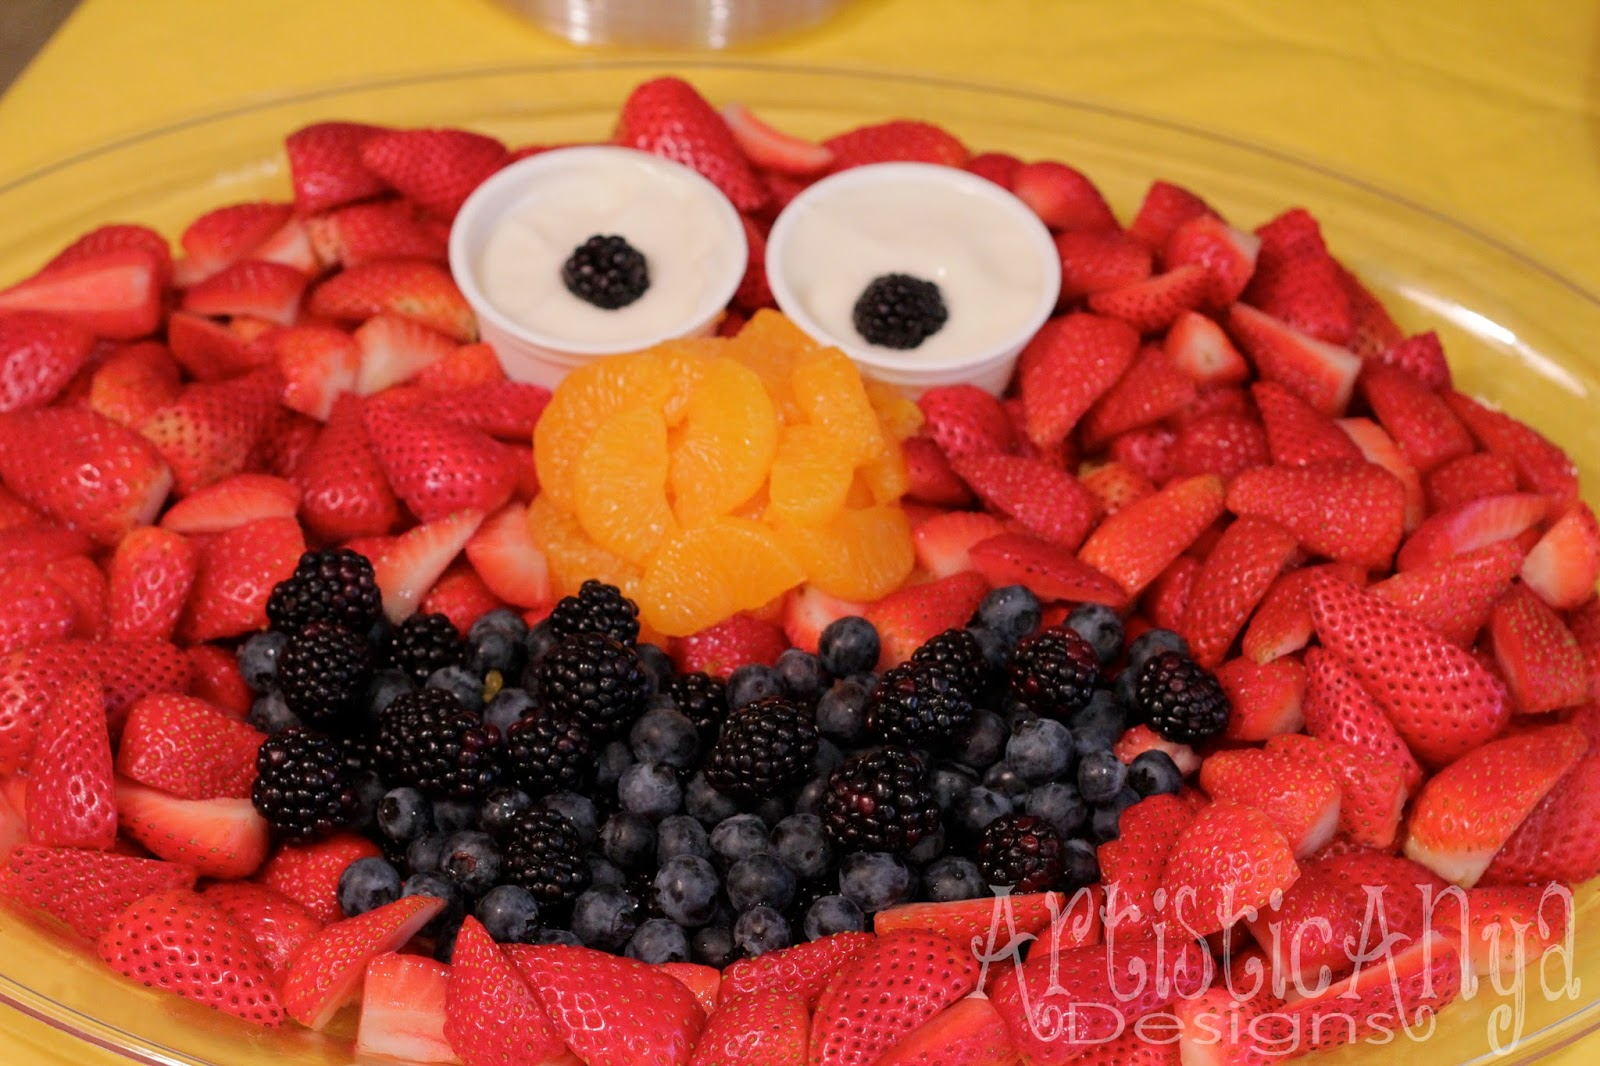 Elmo 1st birthday party ideas birthday party sesamestreet -  Elmo Party Ideas I Found While Pinning I Saw Several Fruit And Veggie Trays Made Of Sesame Street Characters I Knew For Sure That I Wanted To Make An